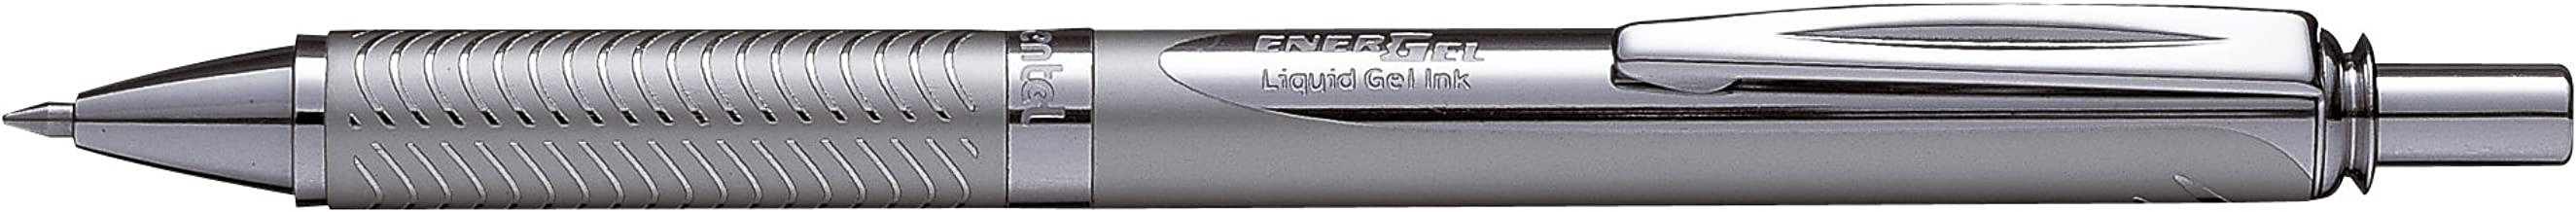 Pentel BL407A EnerGel Alloy RT Retractable Liquid Gel Pen.7mm, Chrome Barrel, Black Ink